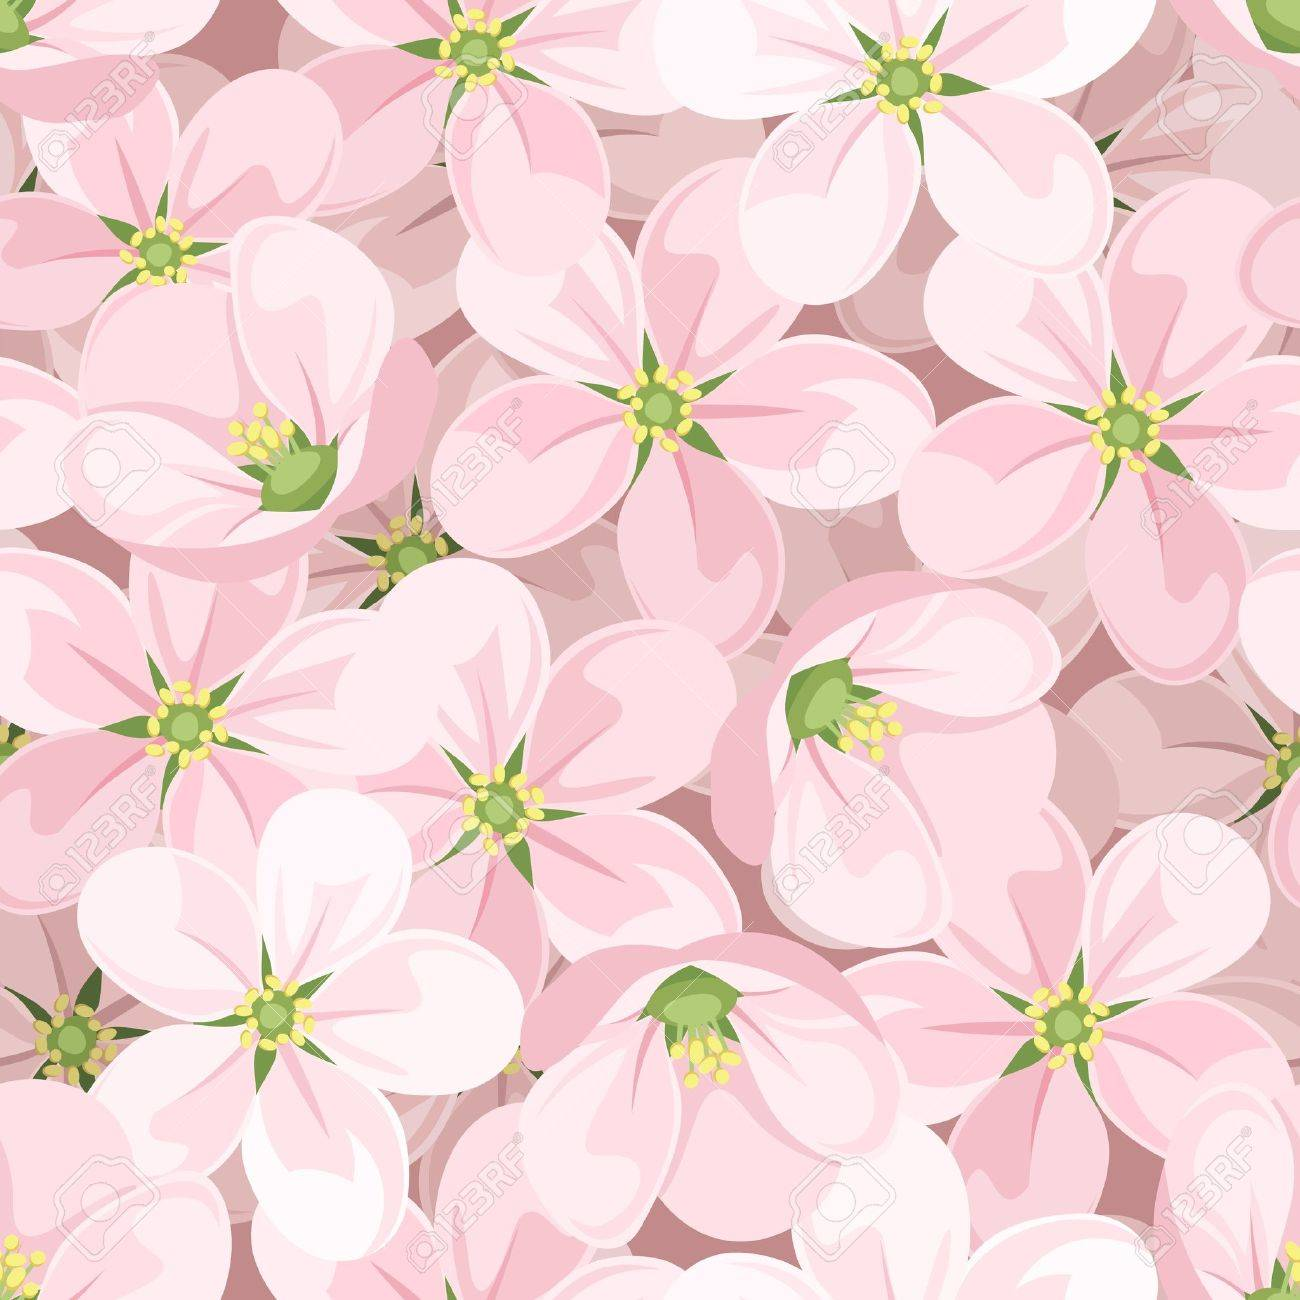 Seamless background with apple blossoms. Stock Vector - 18289057